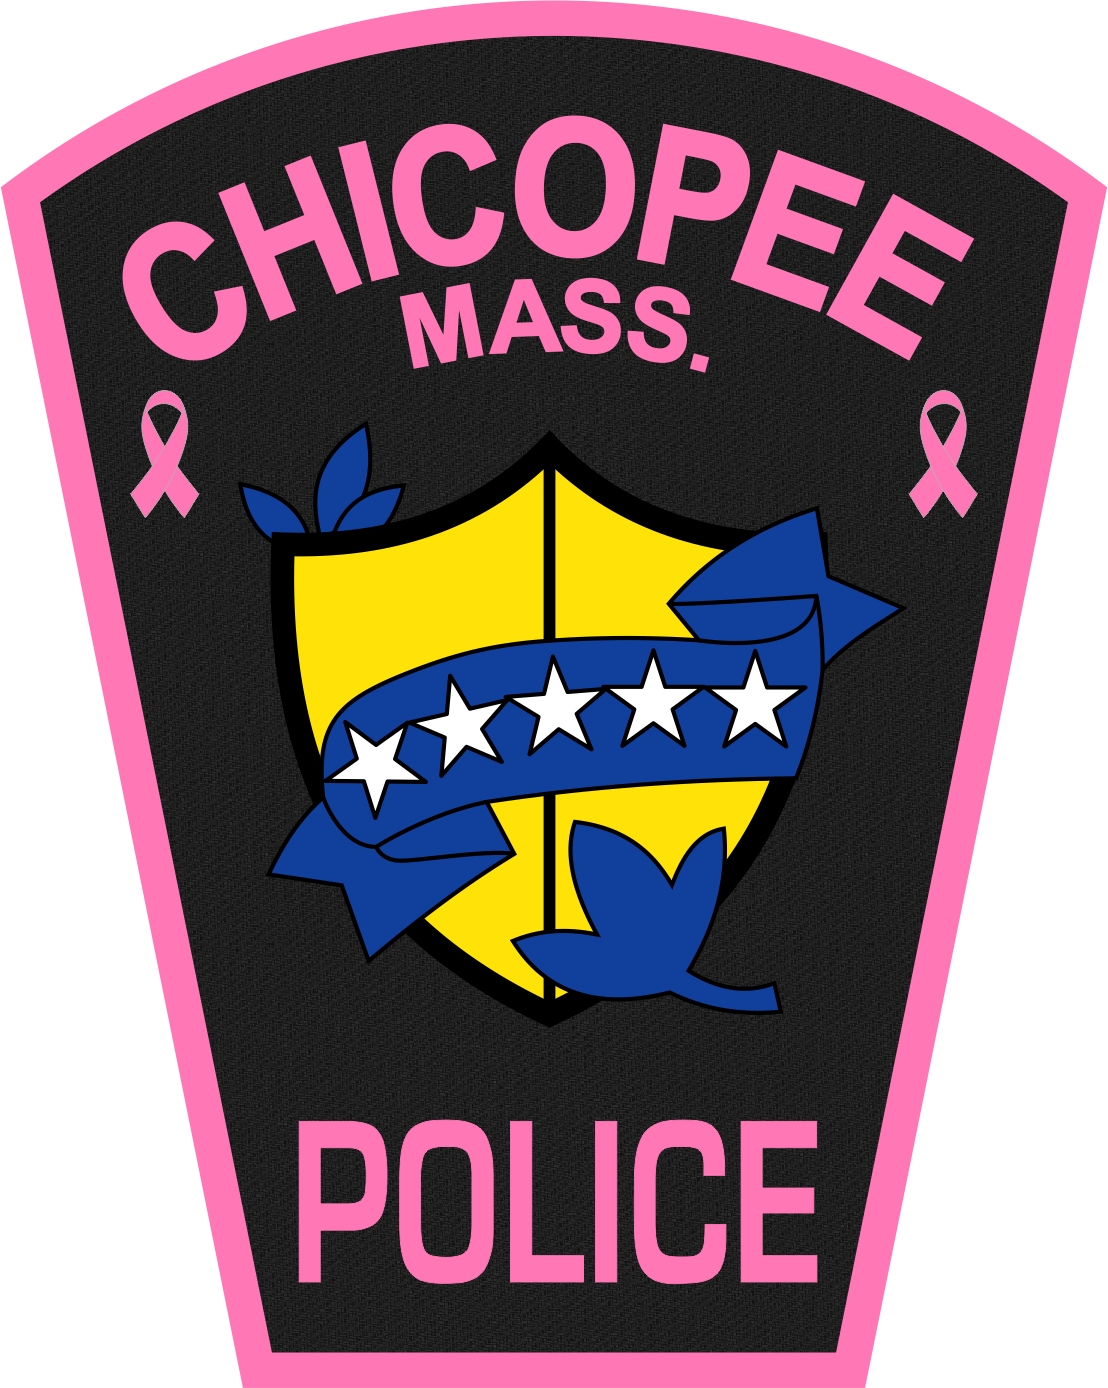 CHICOPEE POLICE (MA)- PINK PATCH.png